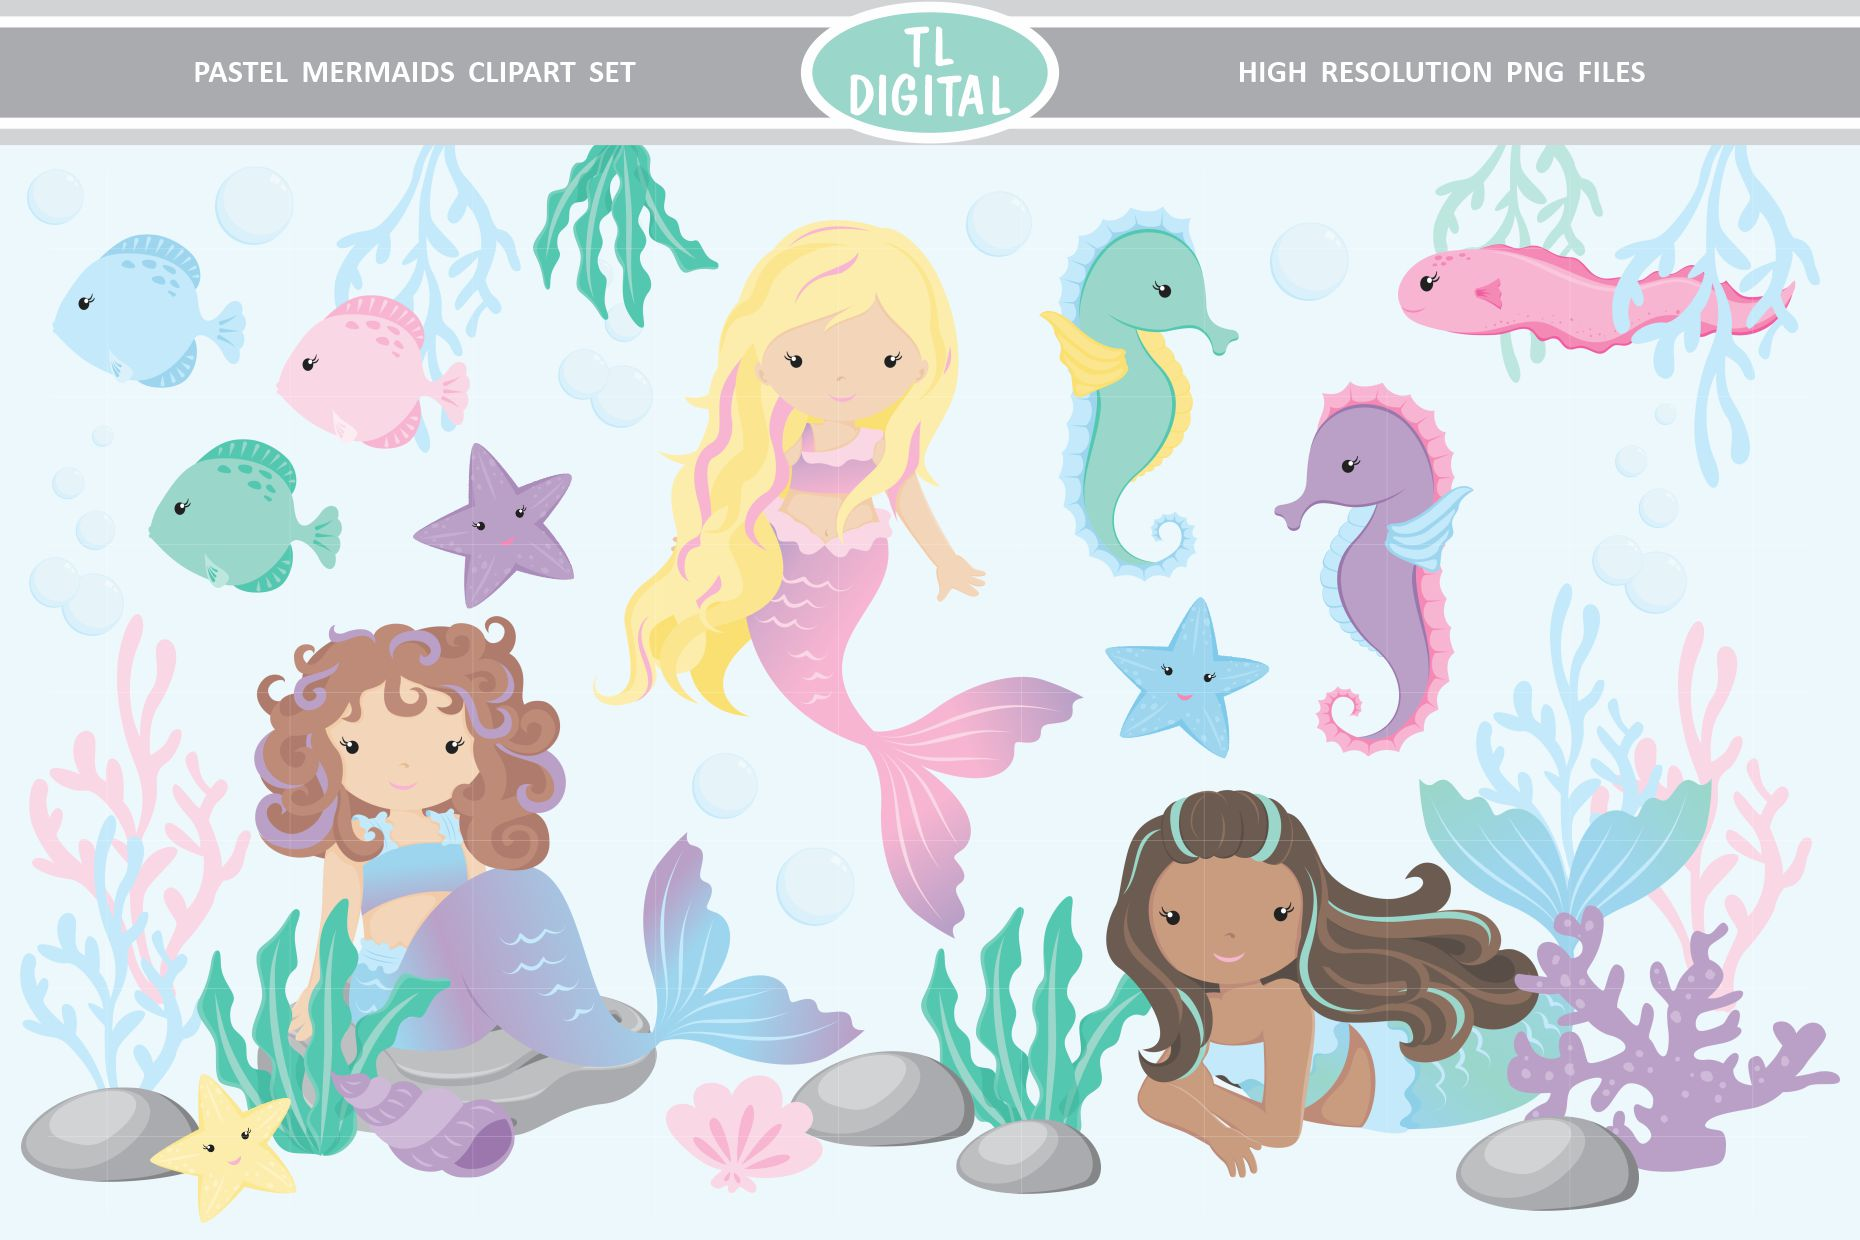 Pastel Mermaid Clipart 29 Png Graphics Graphic By Tl Digital